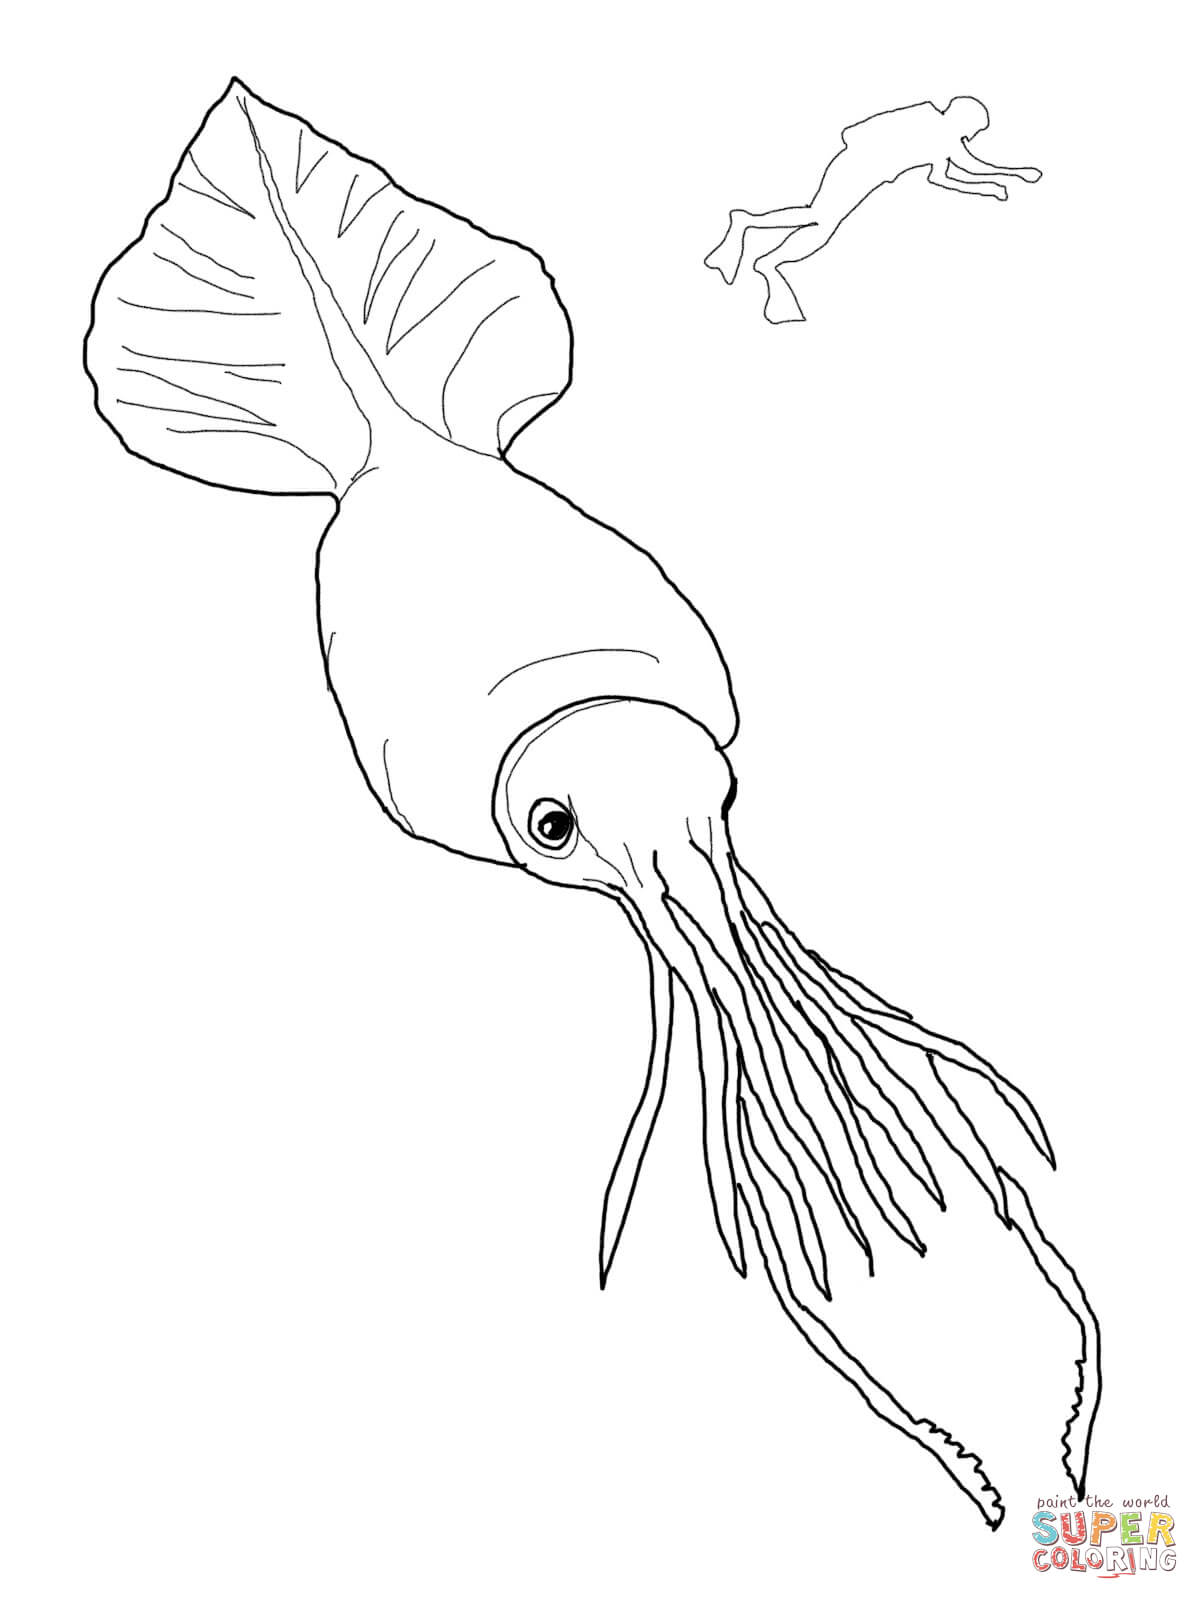 Squid coloring pages to download